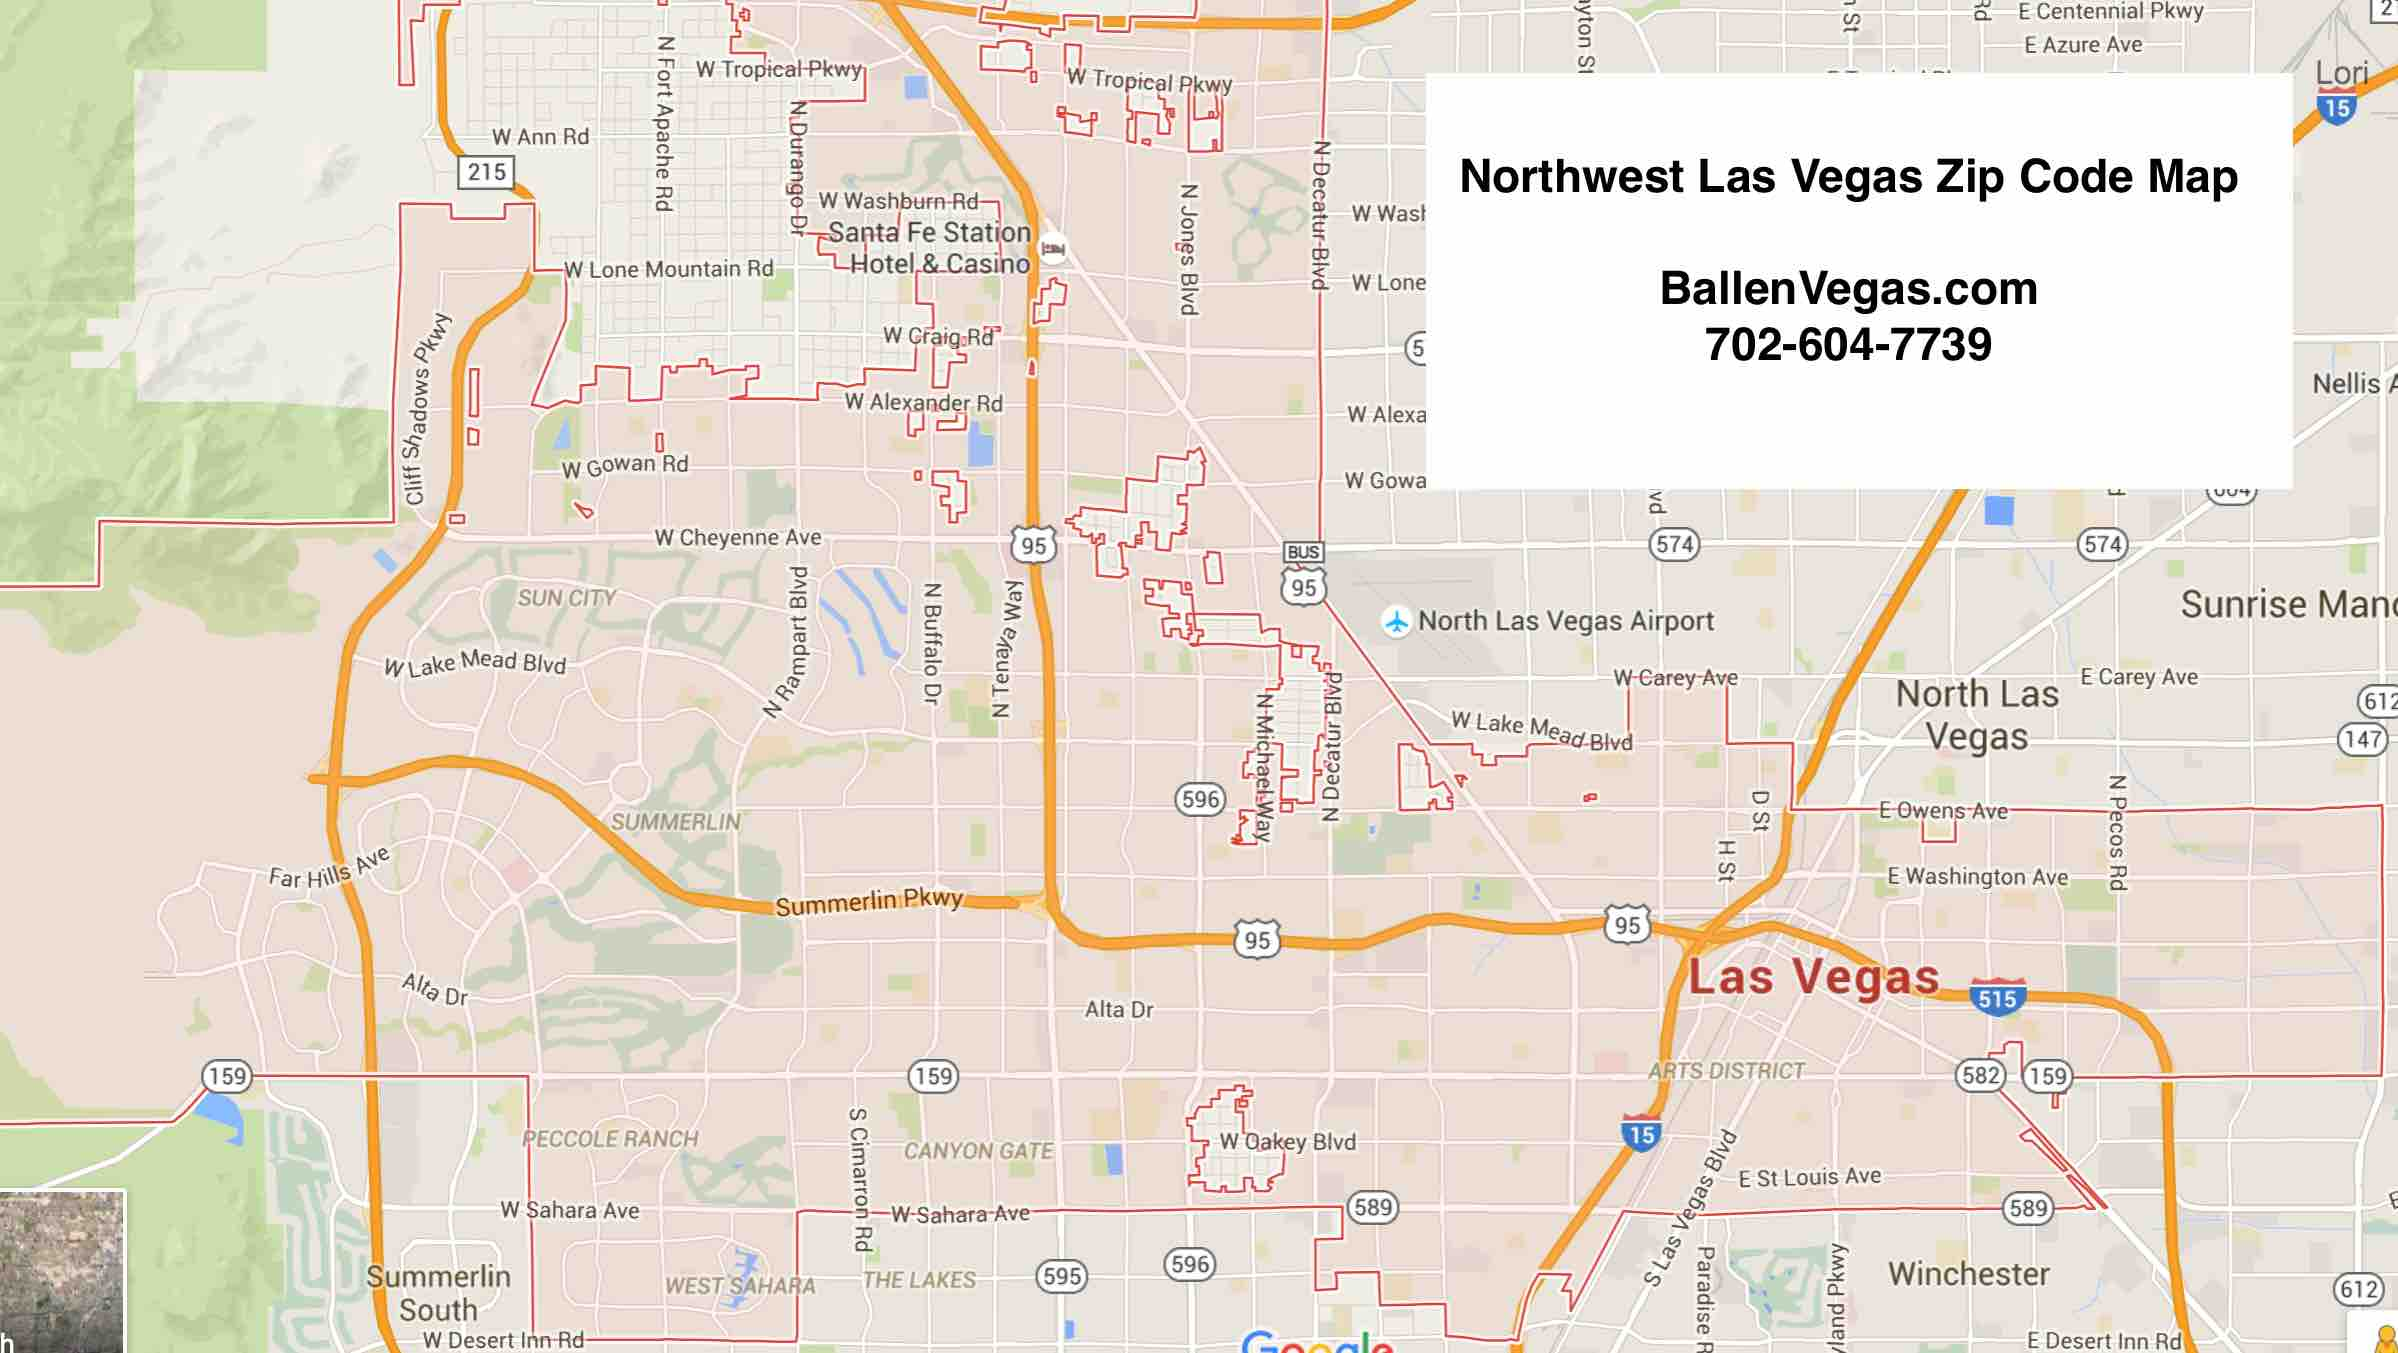 Las Vegas City Map showing Northwest Las Vegas Zip Codes